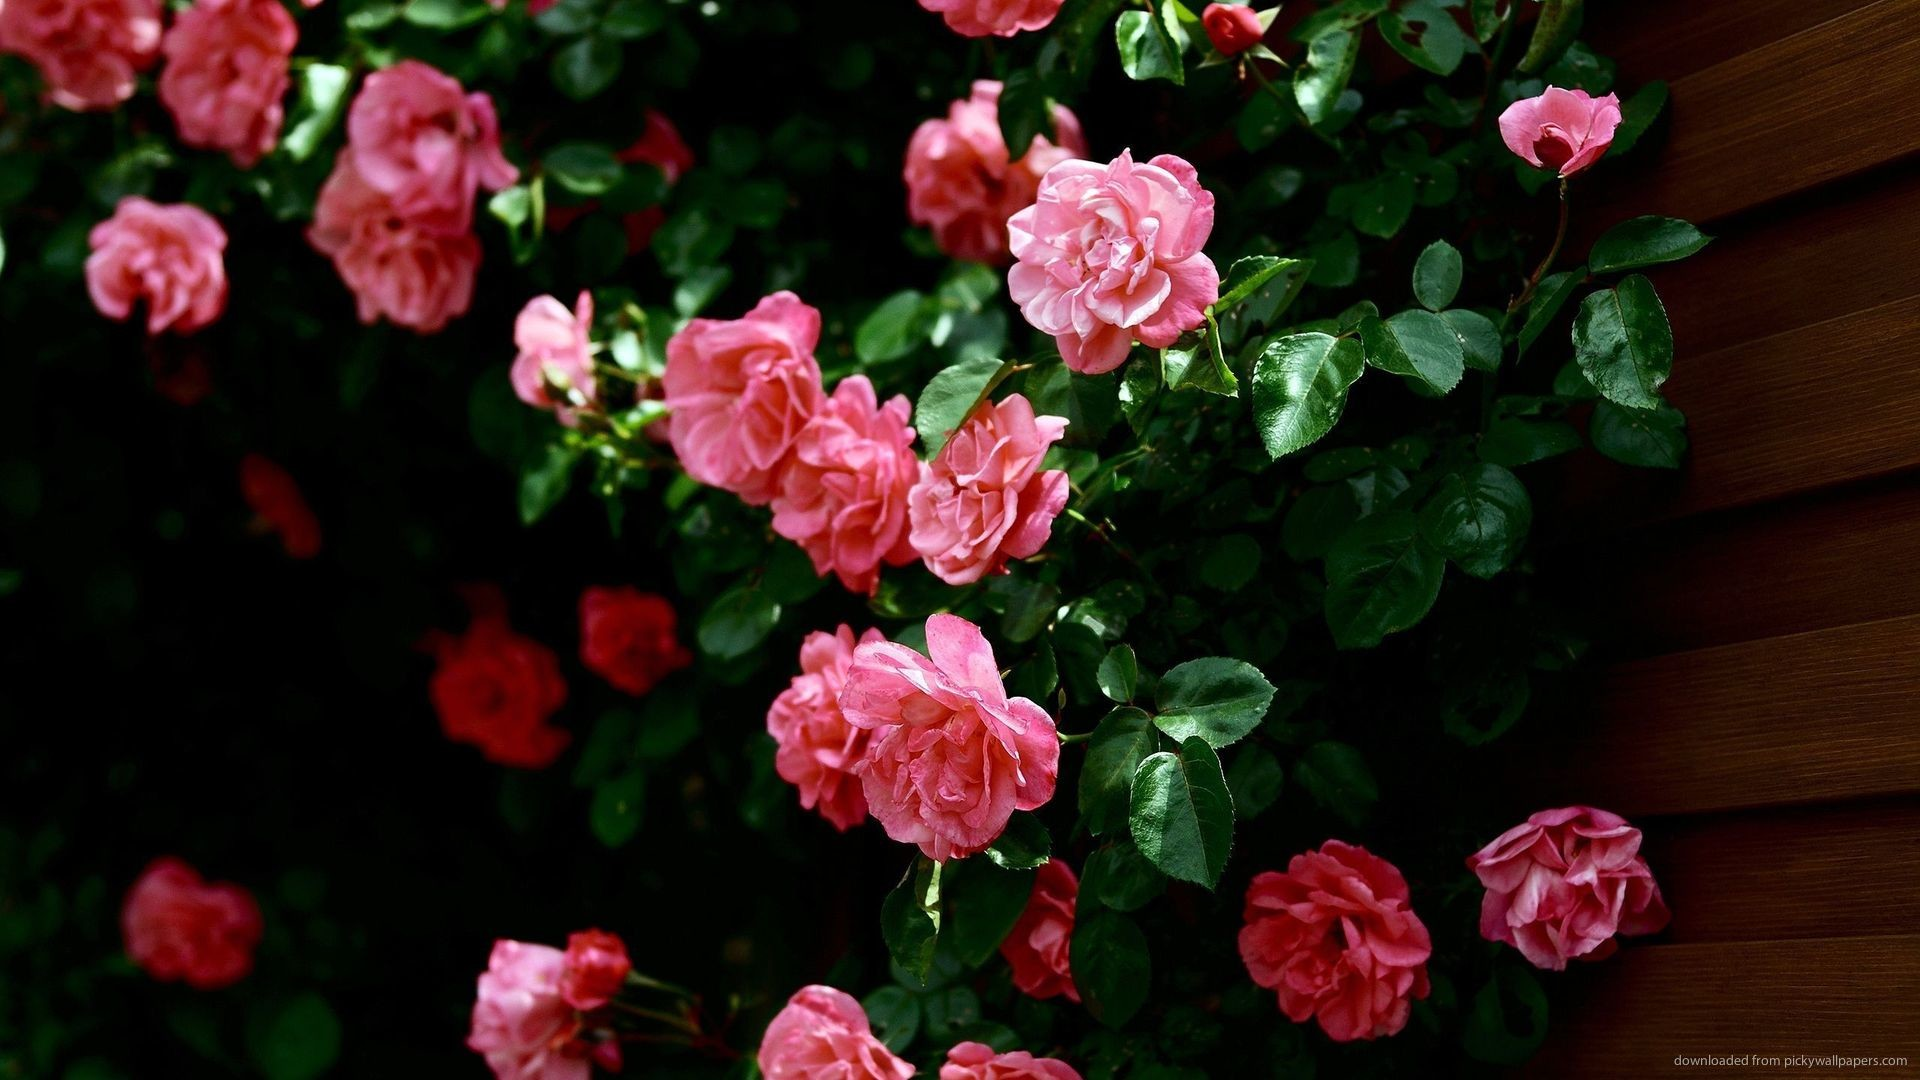 Roses screensaver wallpaper 45 images - Pink rose hd wallpaper ...